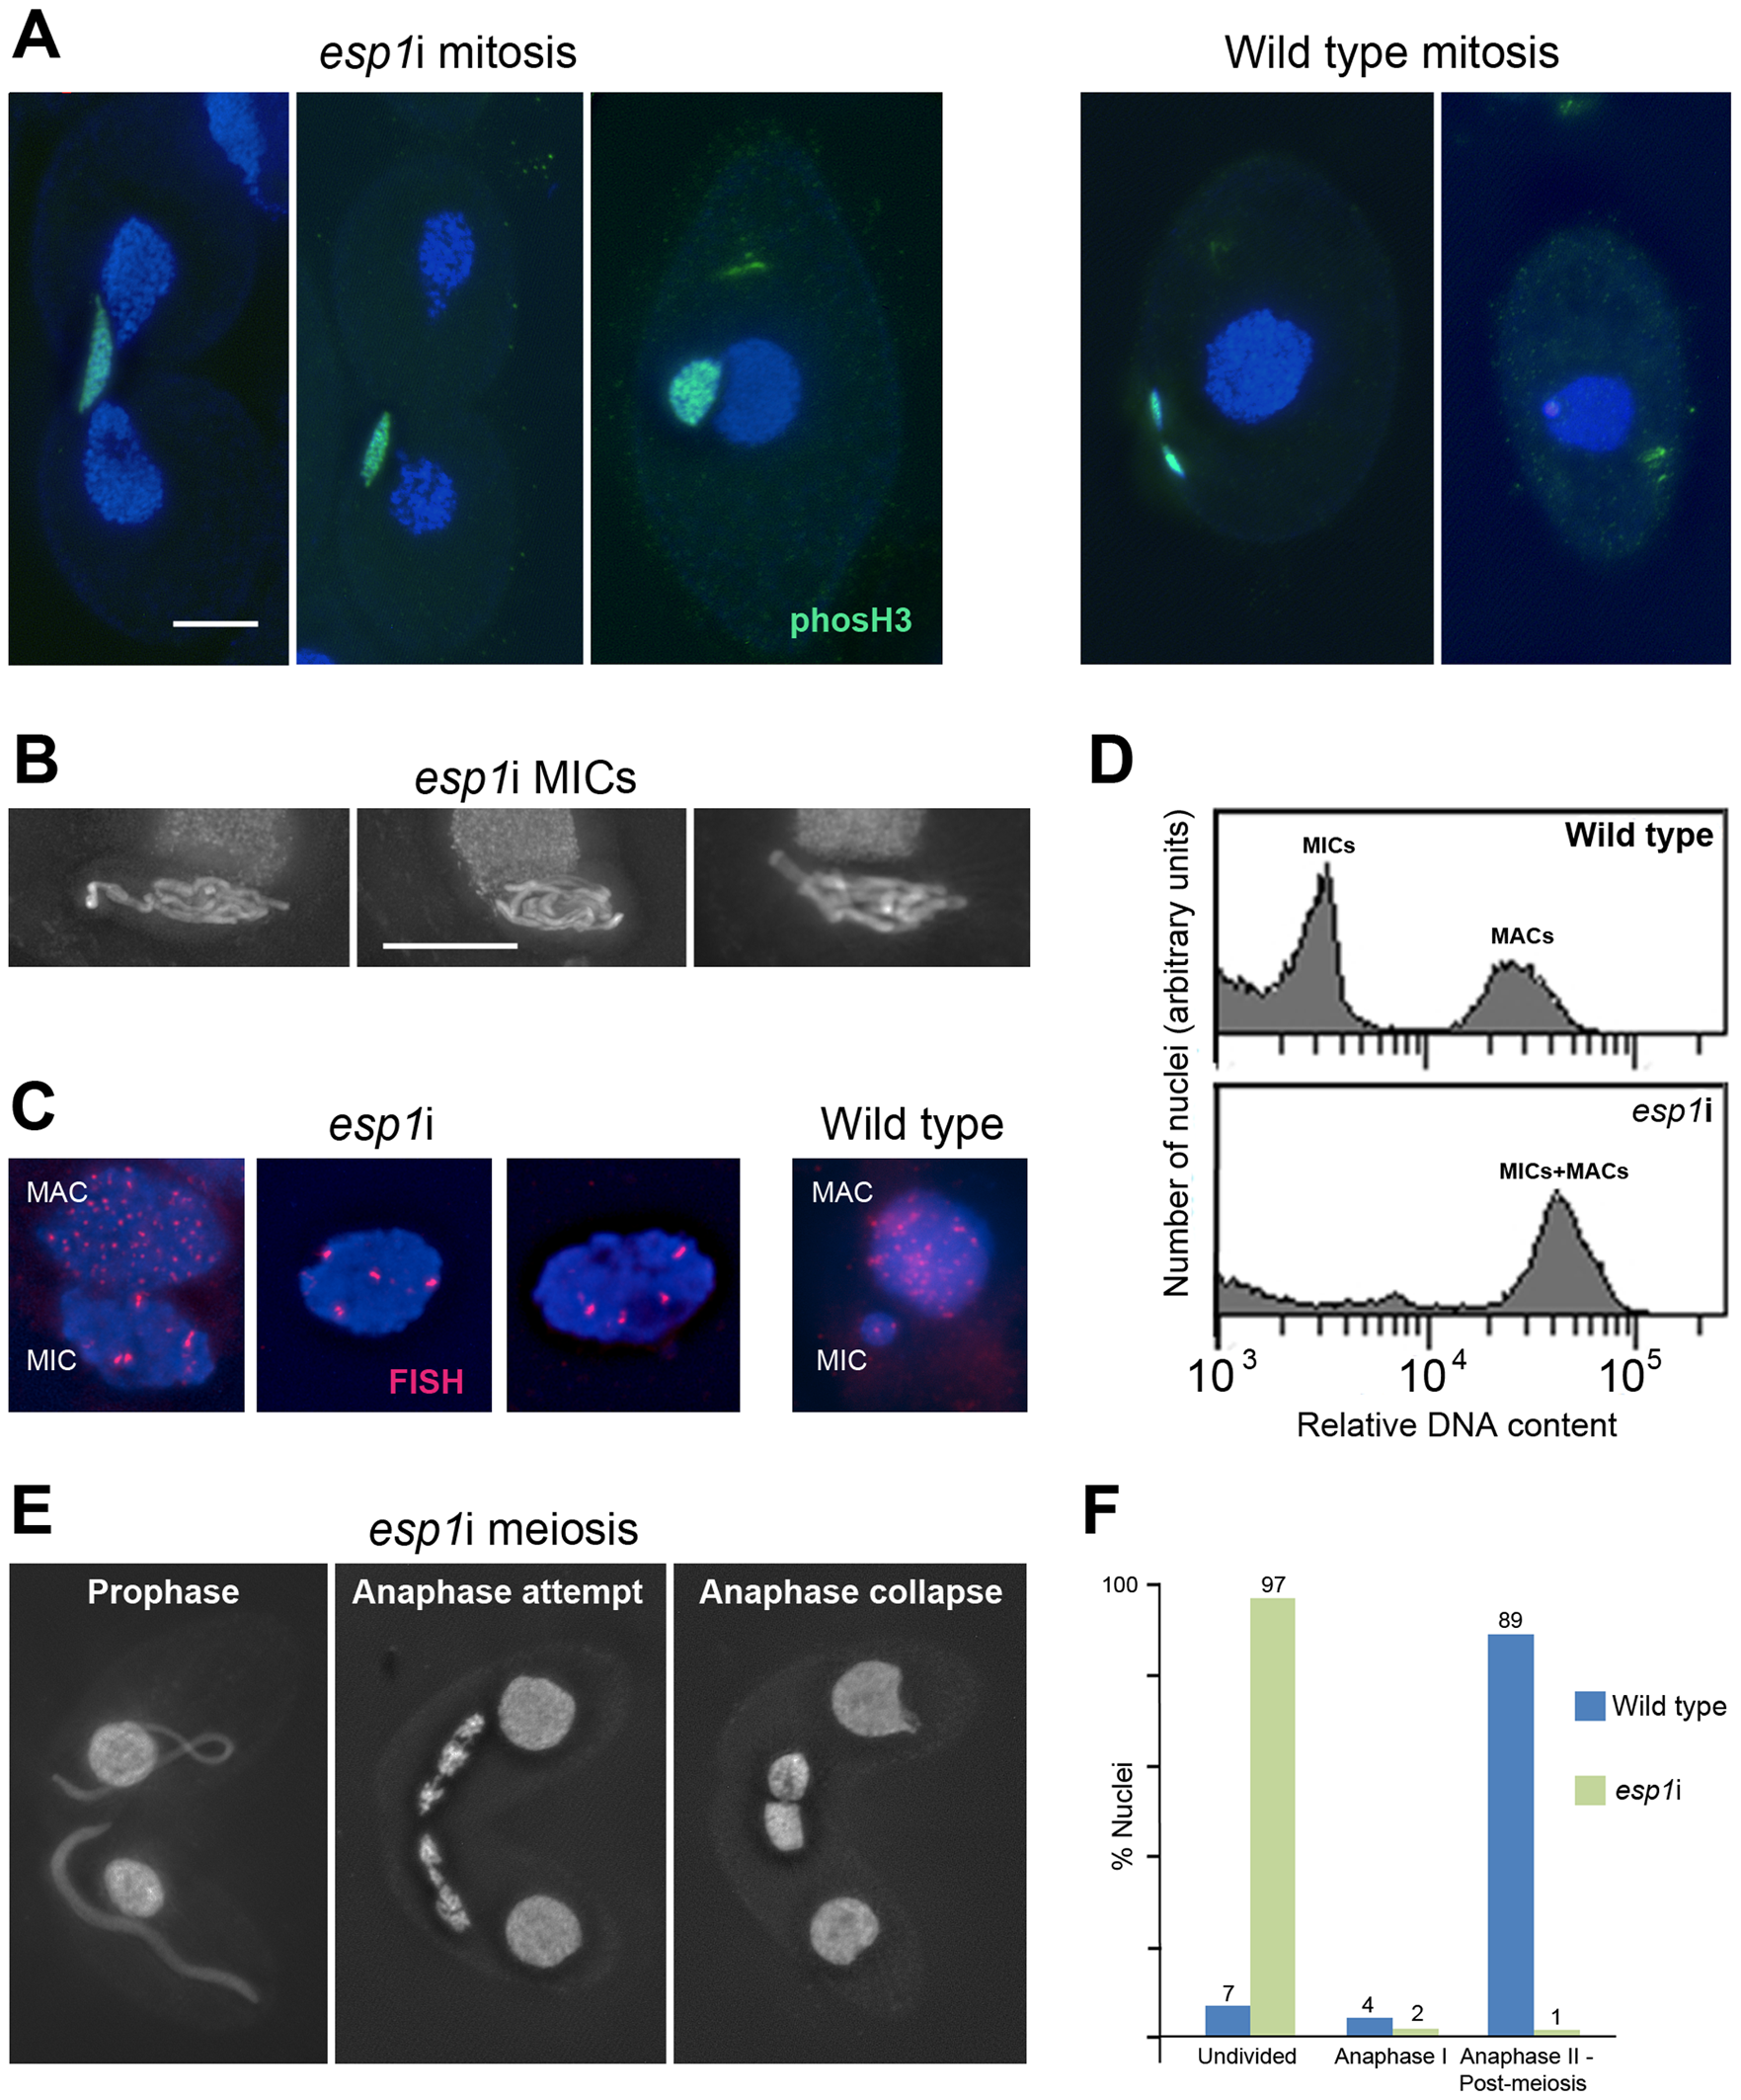 RNAi depletion of separase Esp1p prevents mitotic and meiotic division and causes MIC polyploidization.